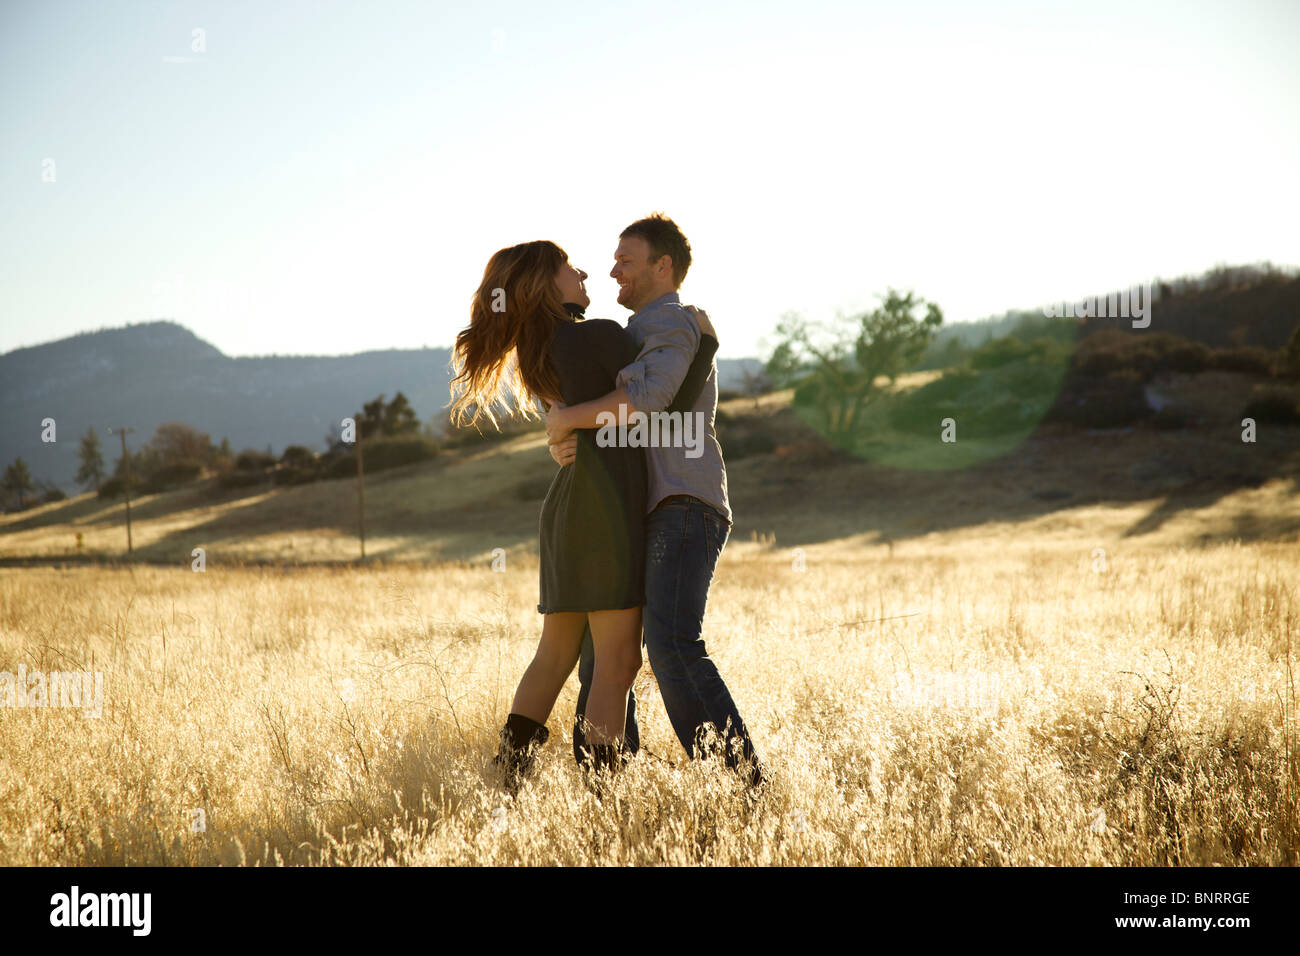 Happy couple hugging in an open field. - Stock Image